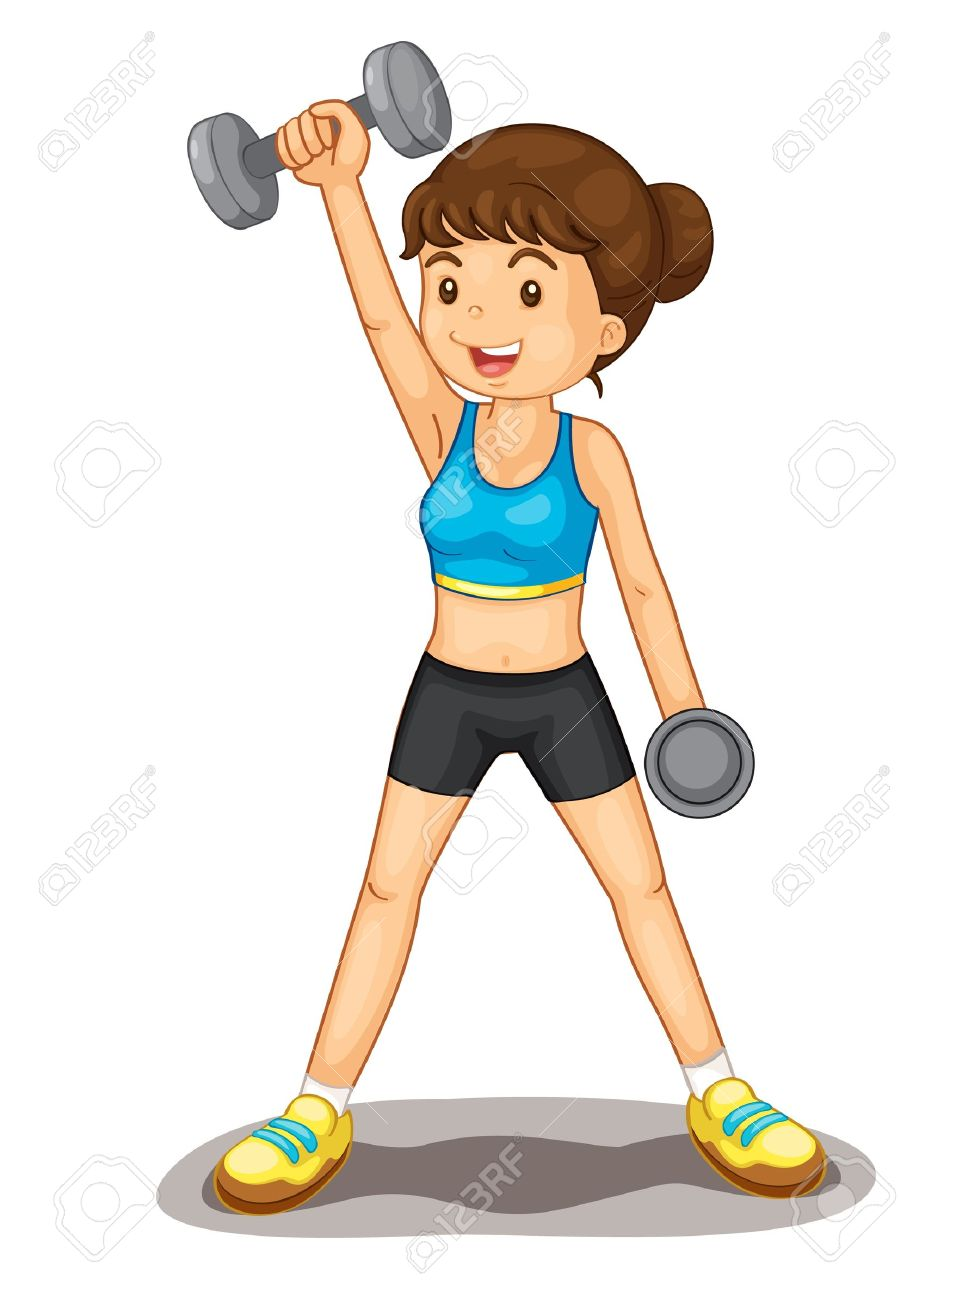 Exercise Clip Art Images.